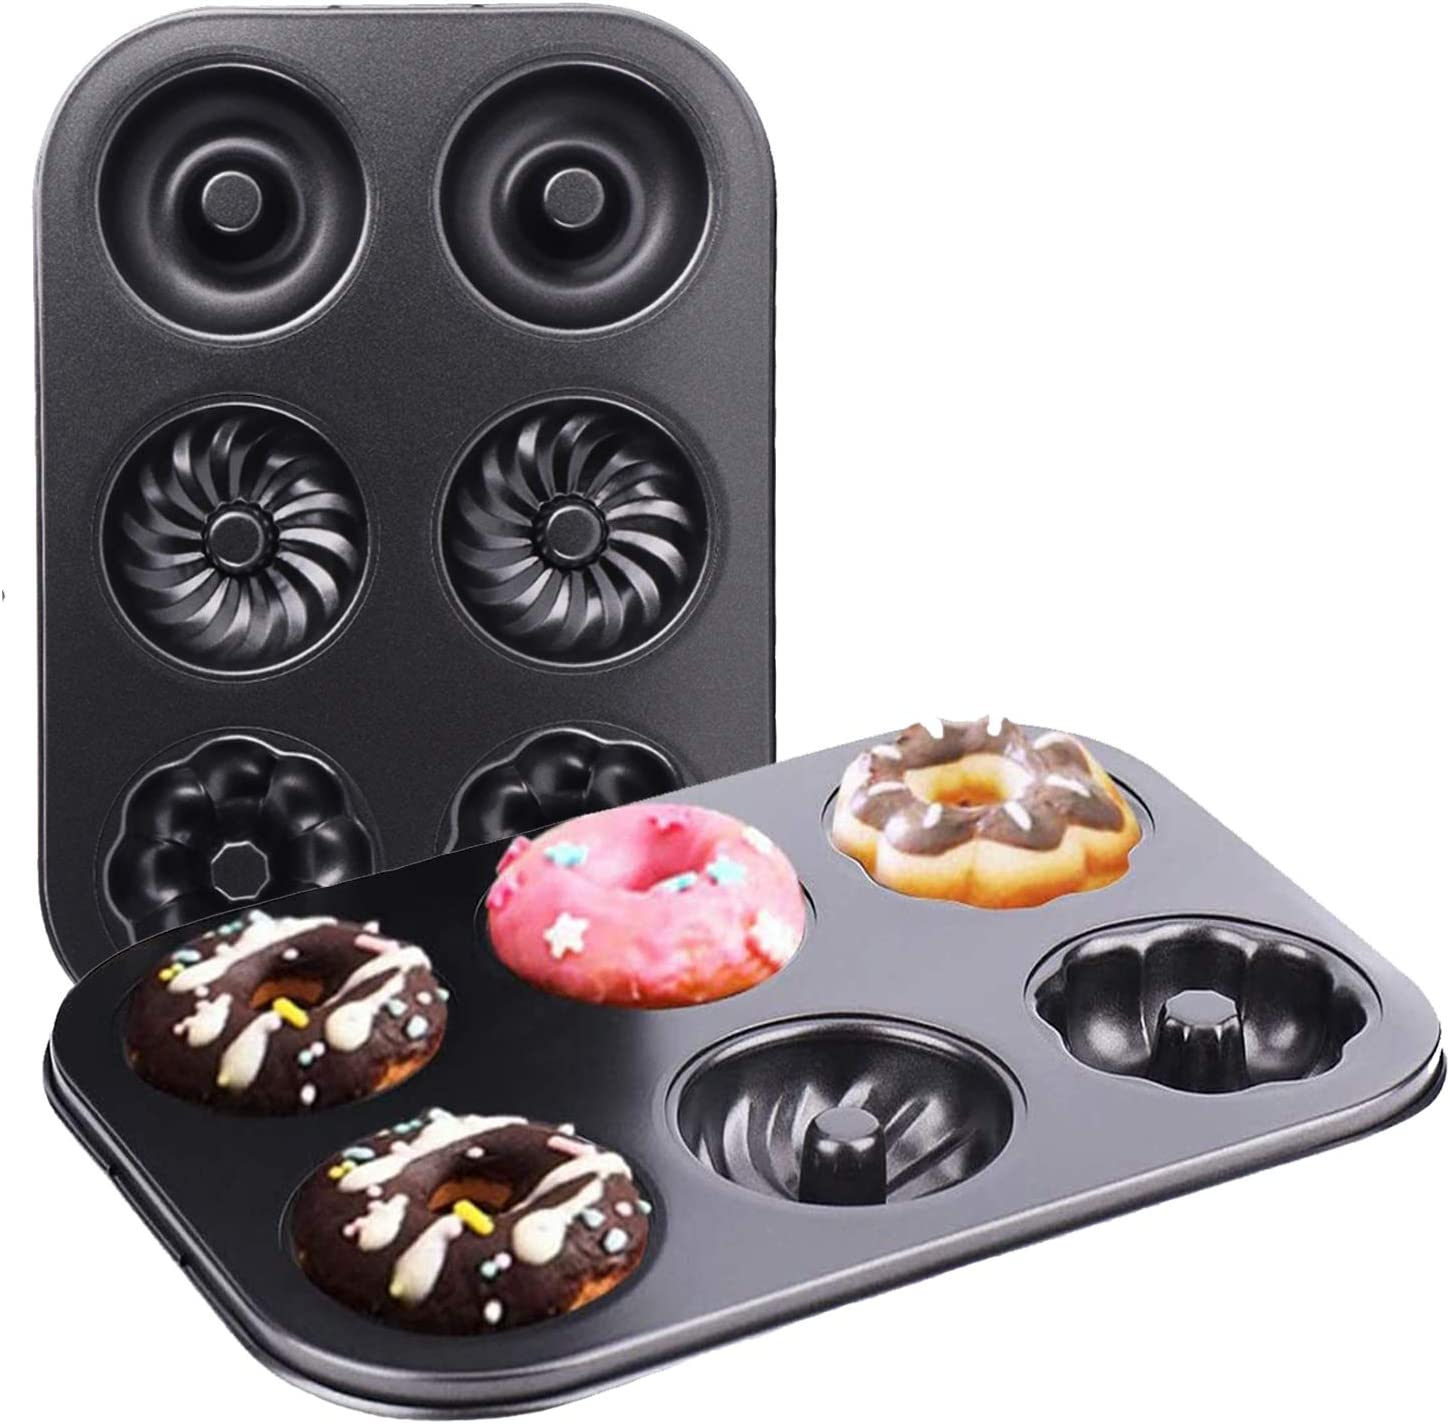 2pcs Silicone Donut Baking Pan Mold Tray Non-Stick 8 Holes for Chocolate Muffin Cake Biscuit Bagels